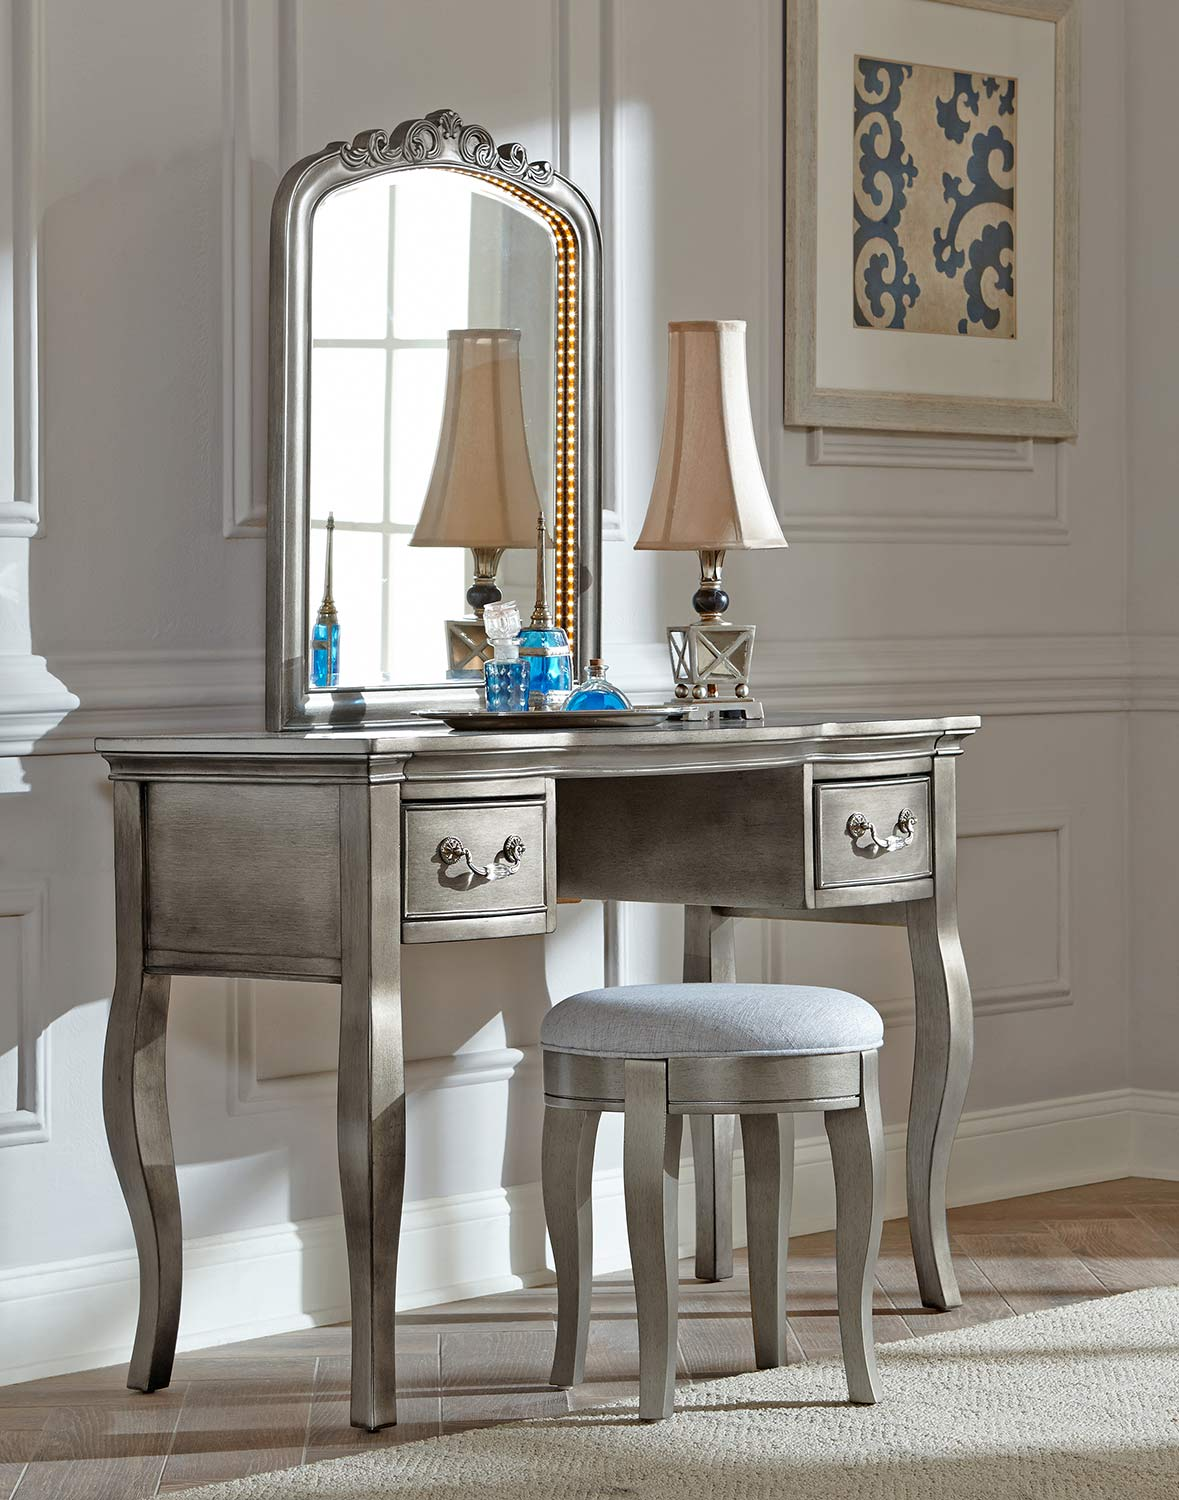 NE Kids Kensington Writing Desk with Vanity Mirror and Stool - Antique Silver